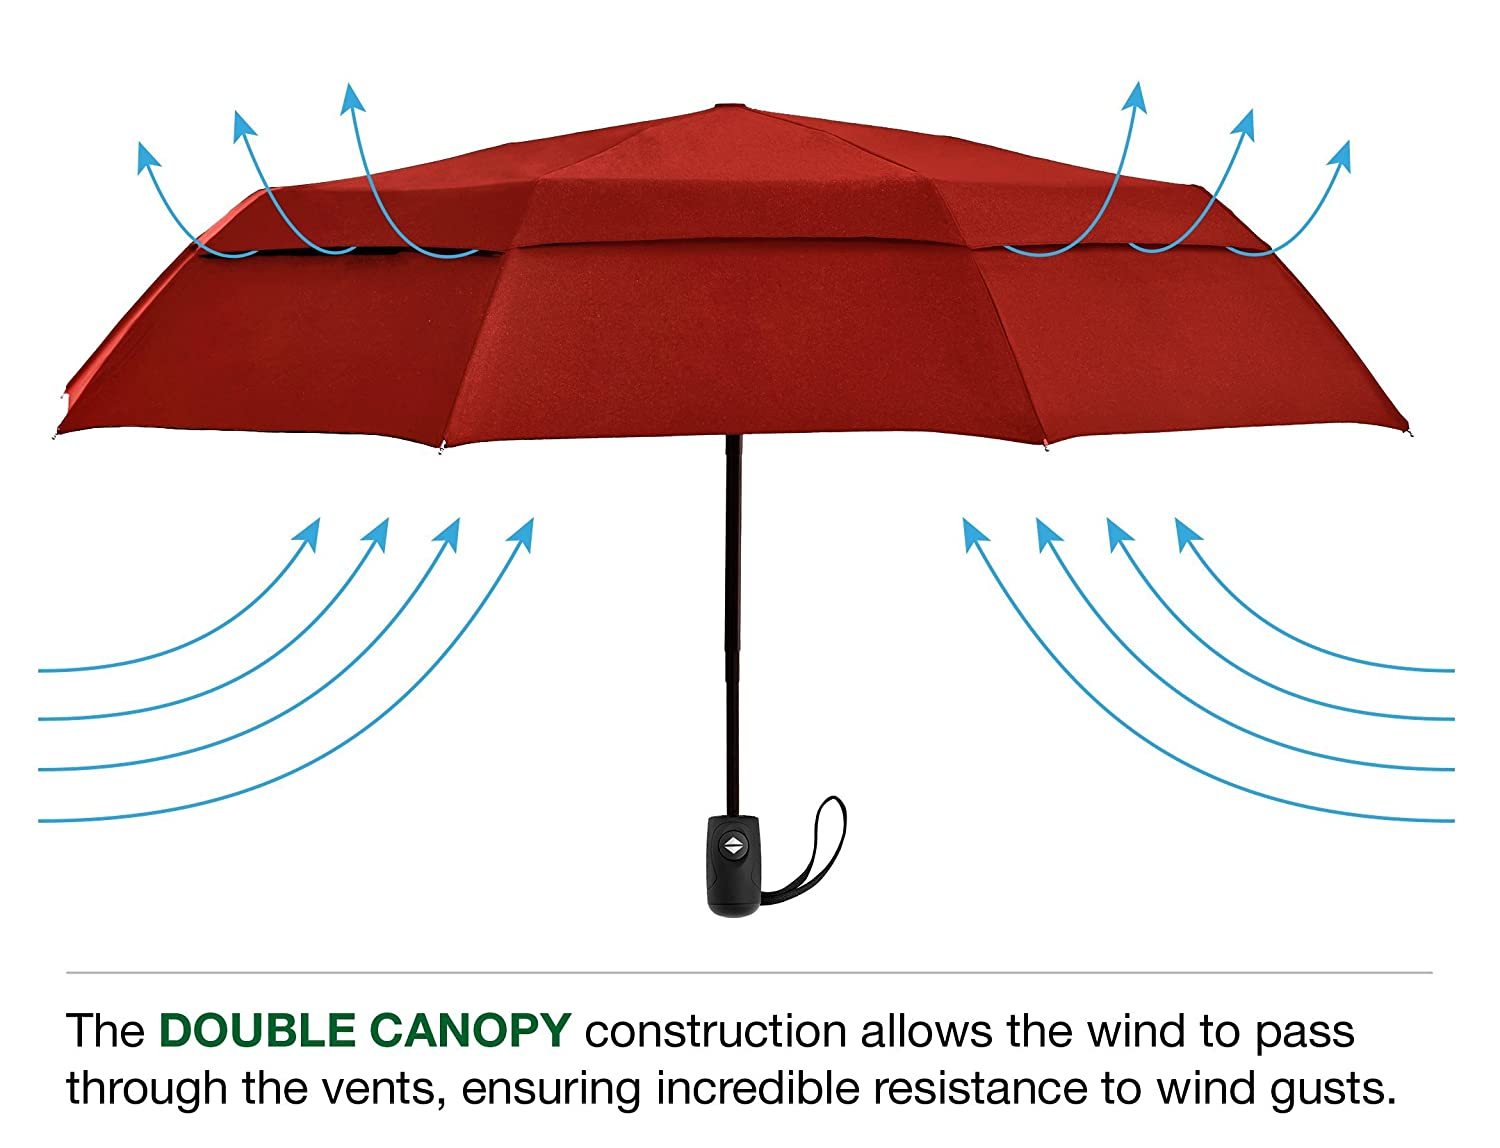 Amazon.com  EEZ-Y Compact Travel Umbrella w/ Windproof Double Canopy Construction - Auto Open Close (Burgundy)  Sports u0026 Outdoors  sc 1 st  Amazon.com : canopy umbrella - memphite.com